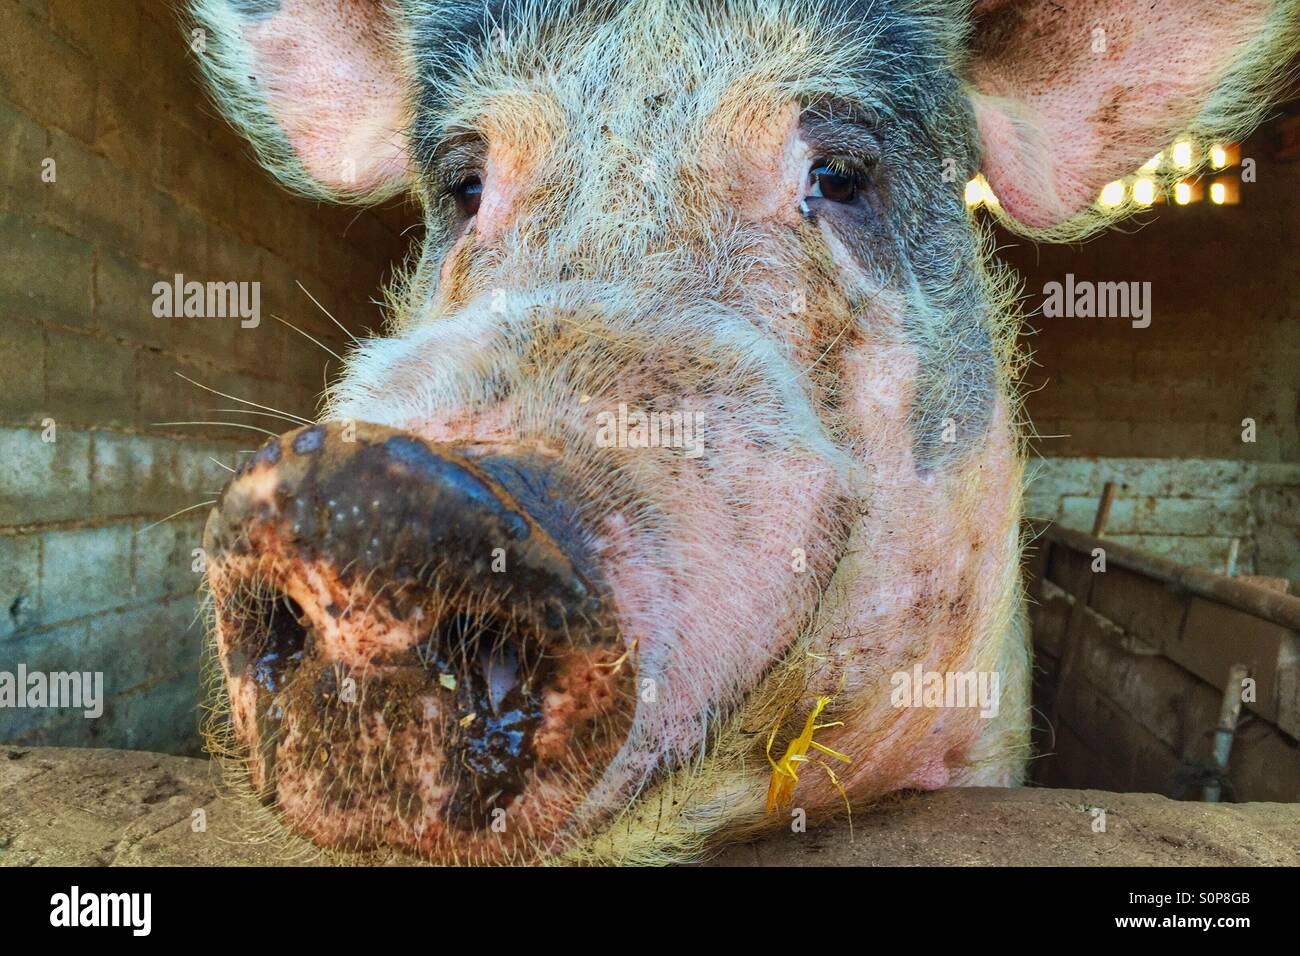 Pig face - Stock Image